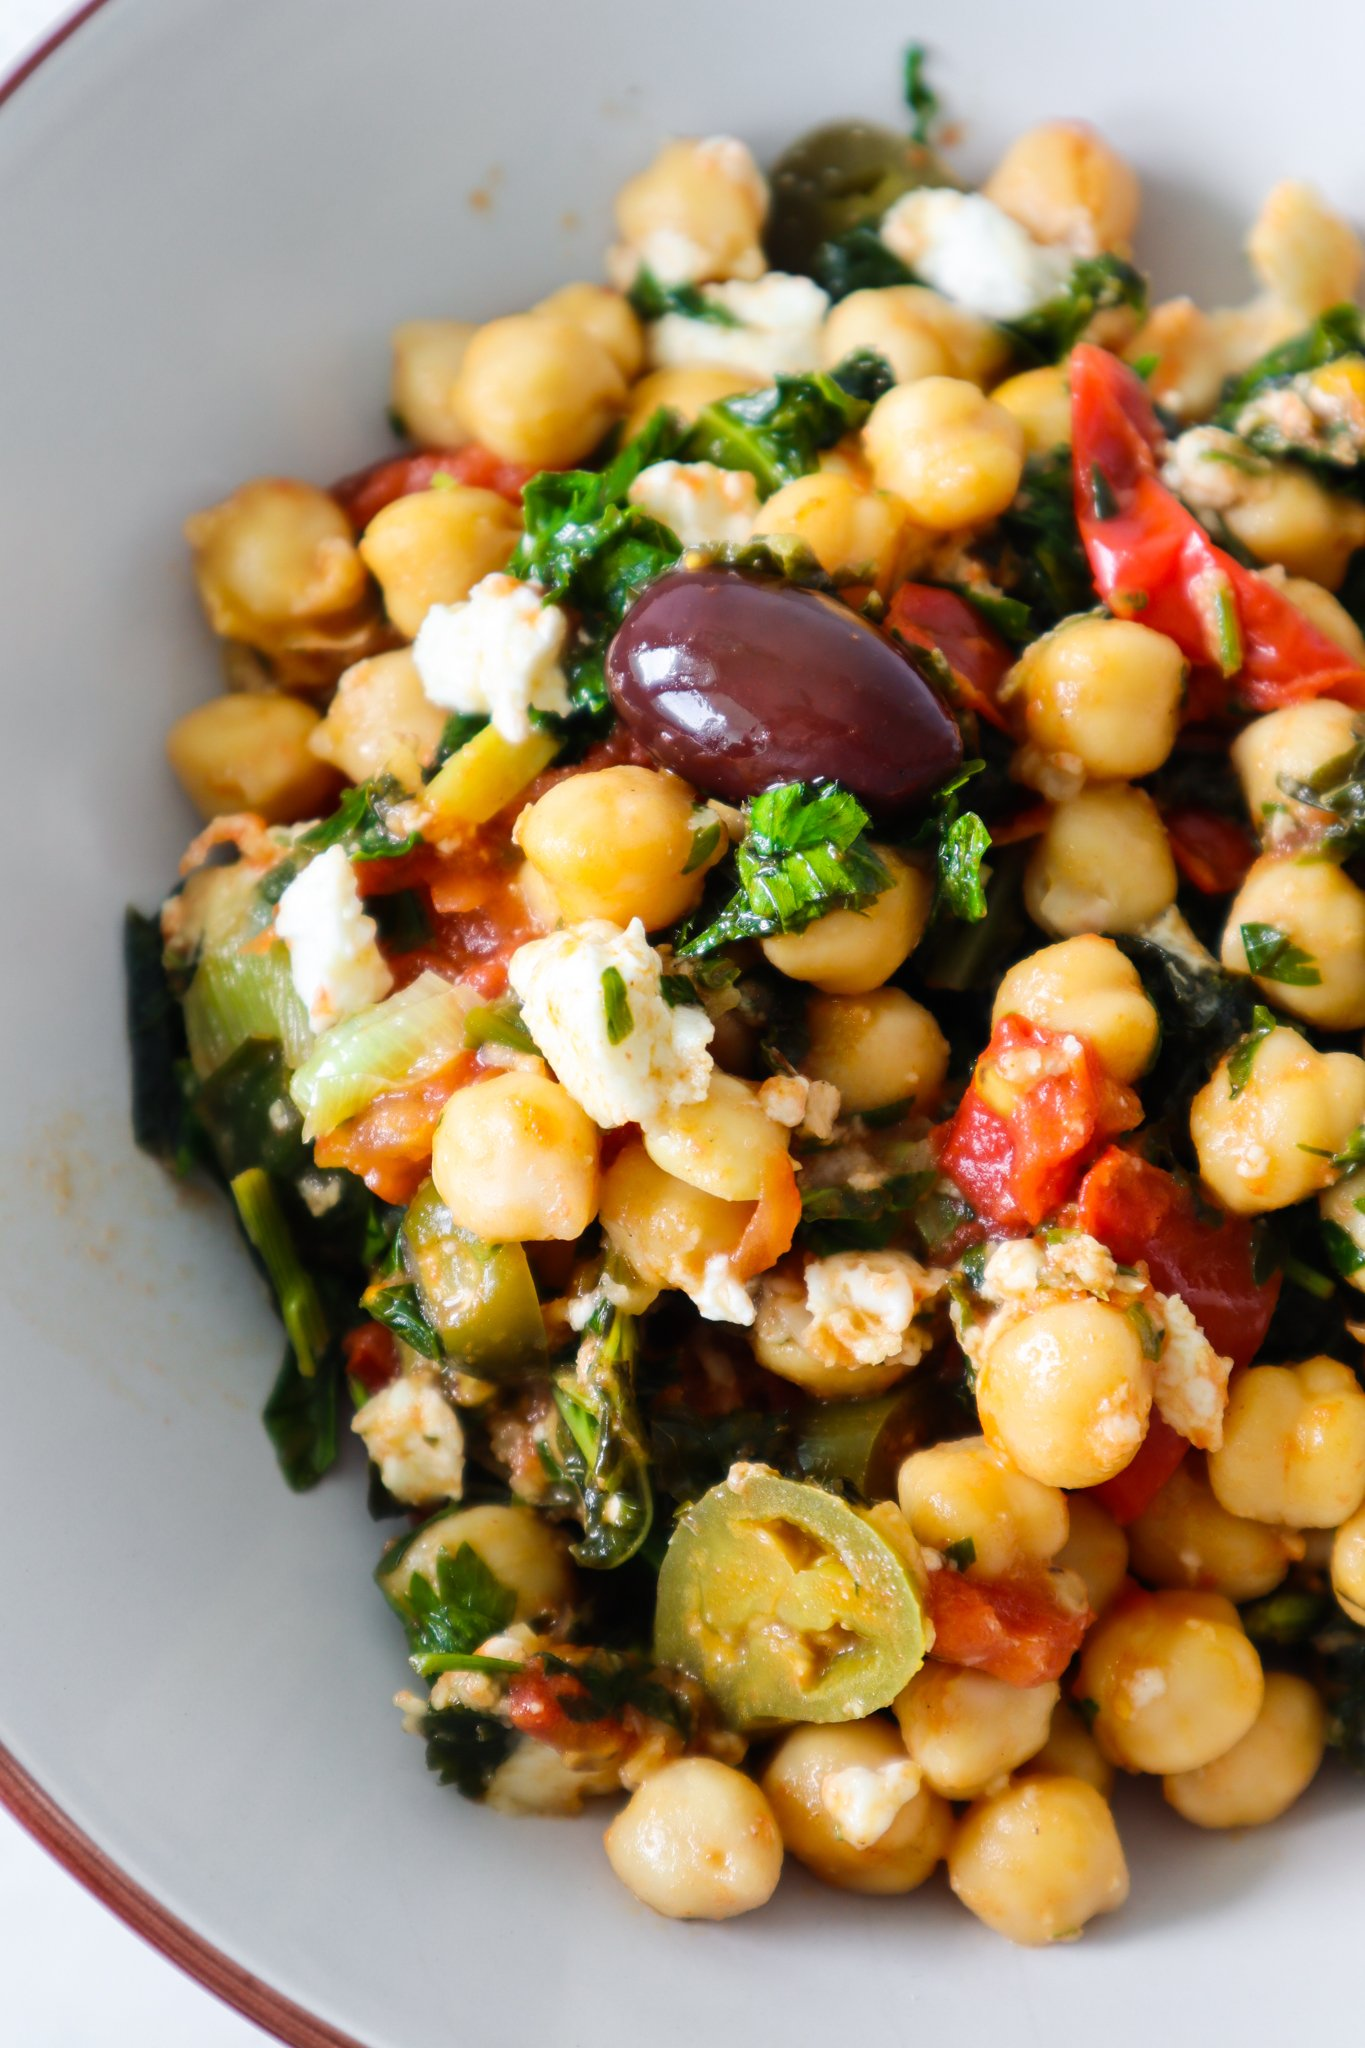 Easy healthy chickpea recipes! We've got vegan chickpea dinner recipes that you can make in one pan, healthy chickpea salads, a comforting chickpea soup and even a vegan chickpea dessert. So grab a can of garbanzo beans and try some of these vegetarian recipes!